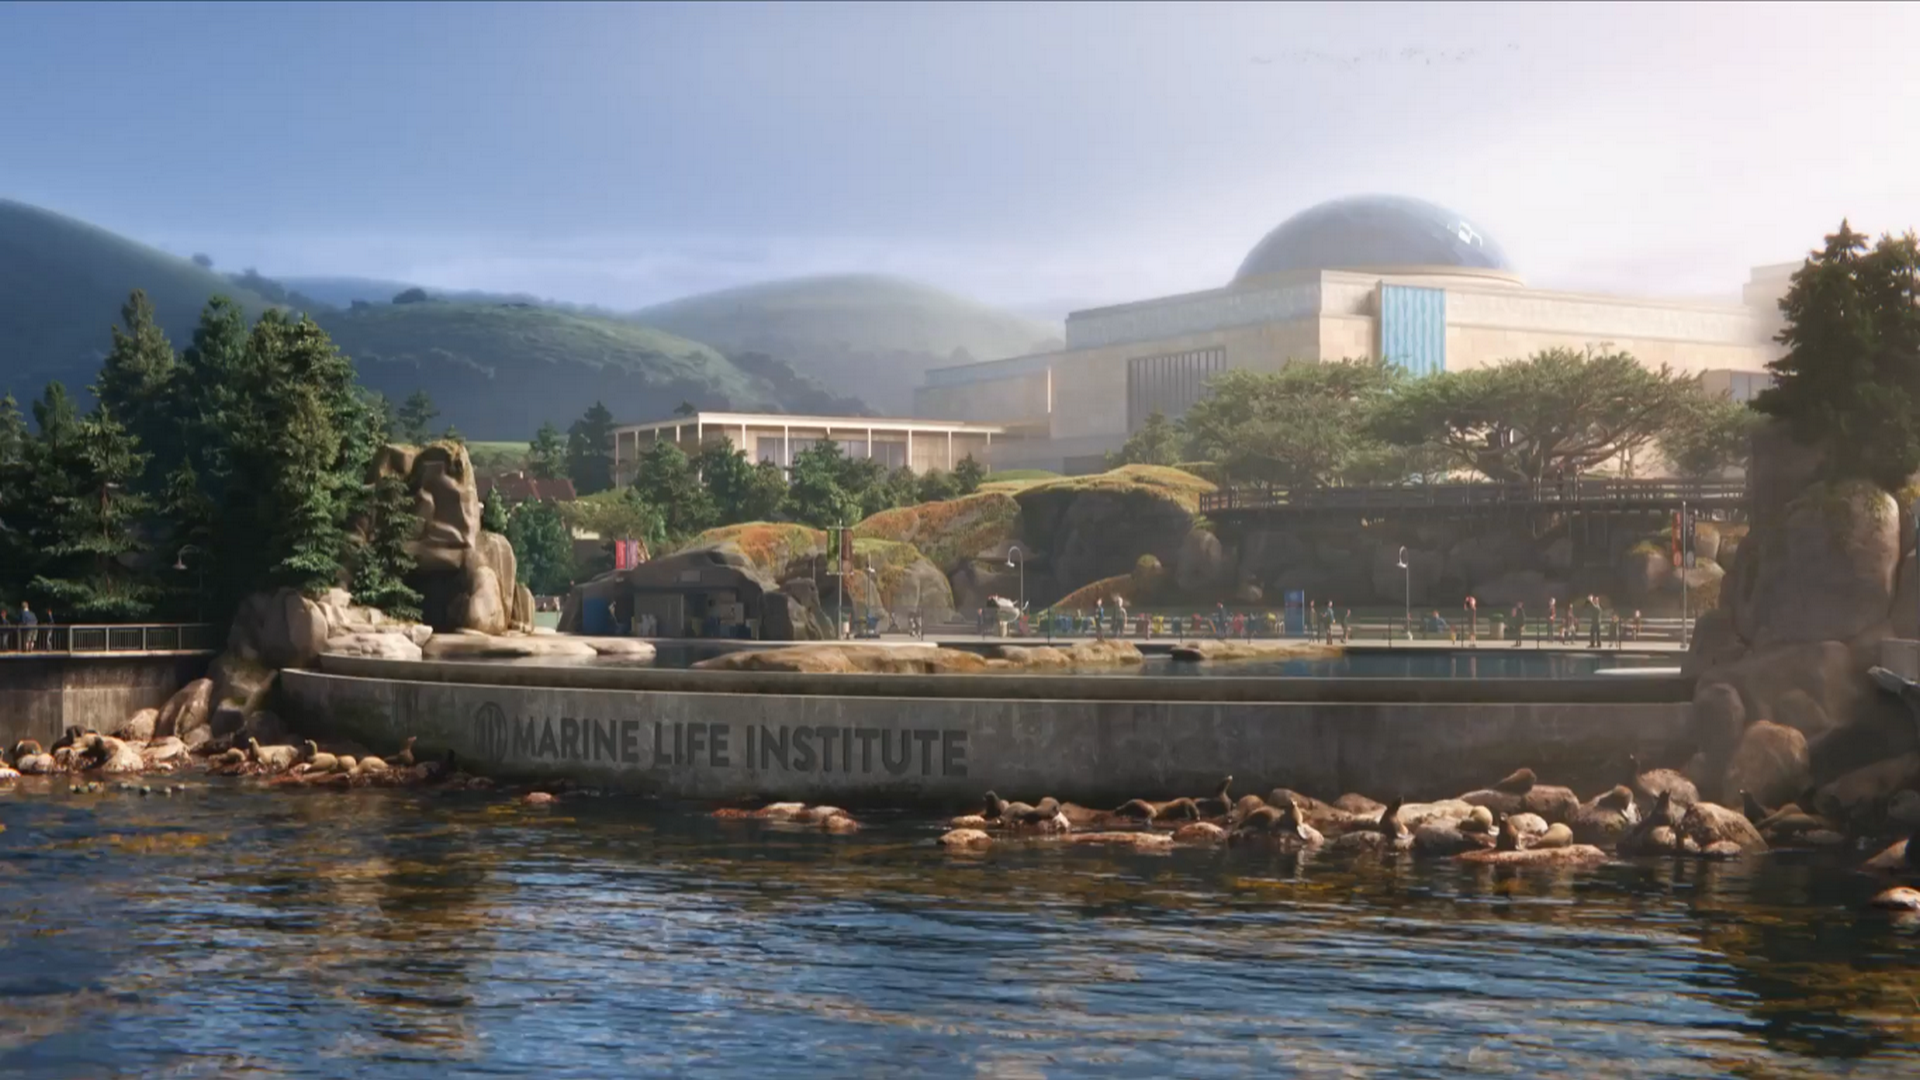 Marine Life Institute in 'Finding Dory'